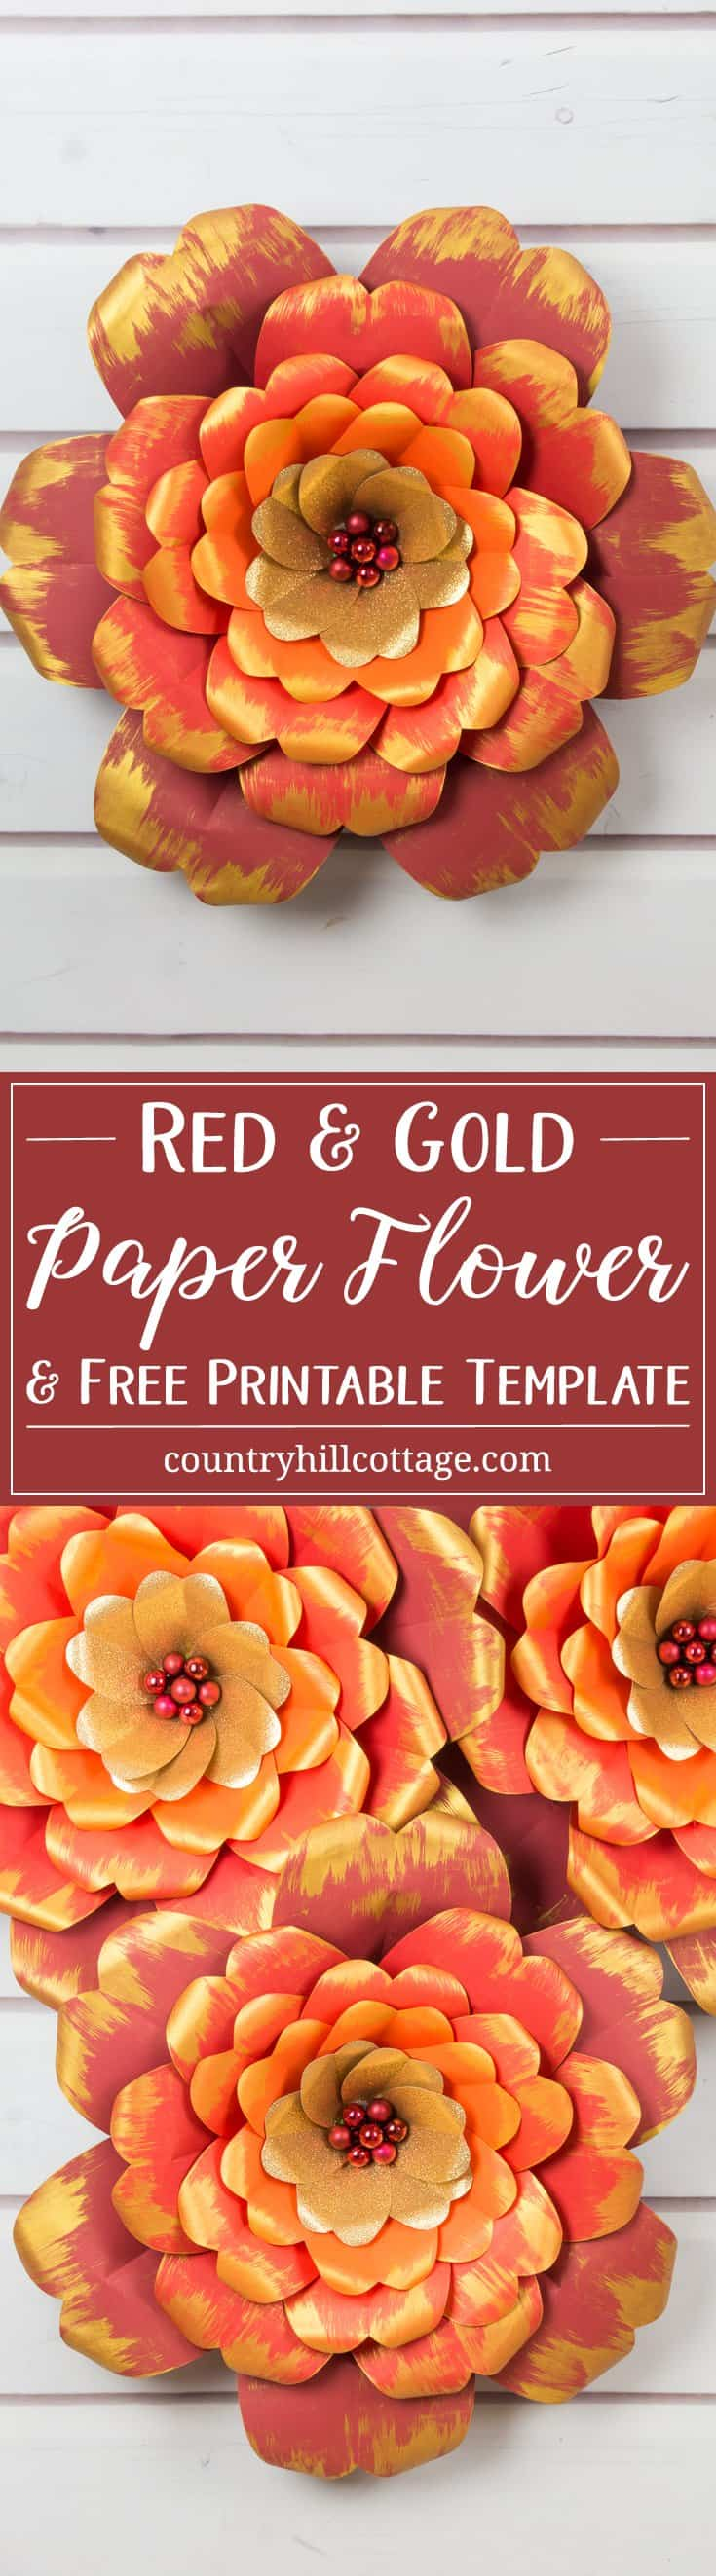 Learn how to make giant red and gold paper flowers! We worked with vibrant shades of cardstock for the petals, ranging from dark red to deep orange, as well as gold glitter paper, and embellished the edges of the petals with gold accents. We used mini bauble ornaments to create the flower centre and to give the flower an elegant finish. You can download the free printable templates we used to make the flowers at our blog. #paperflowers #template #papercrafts | countryhillcottage.com